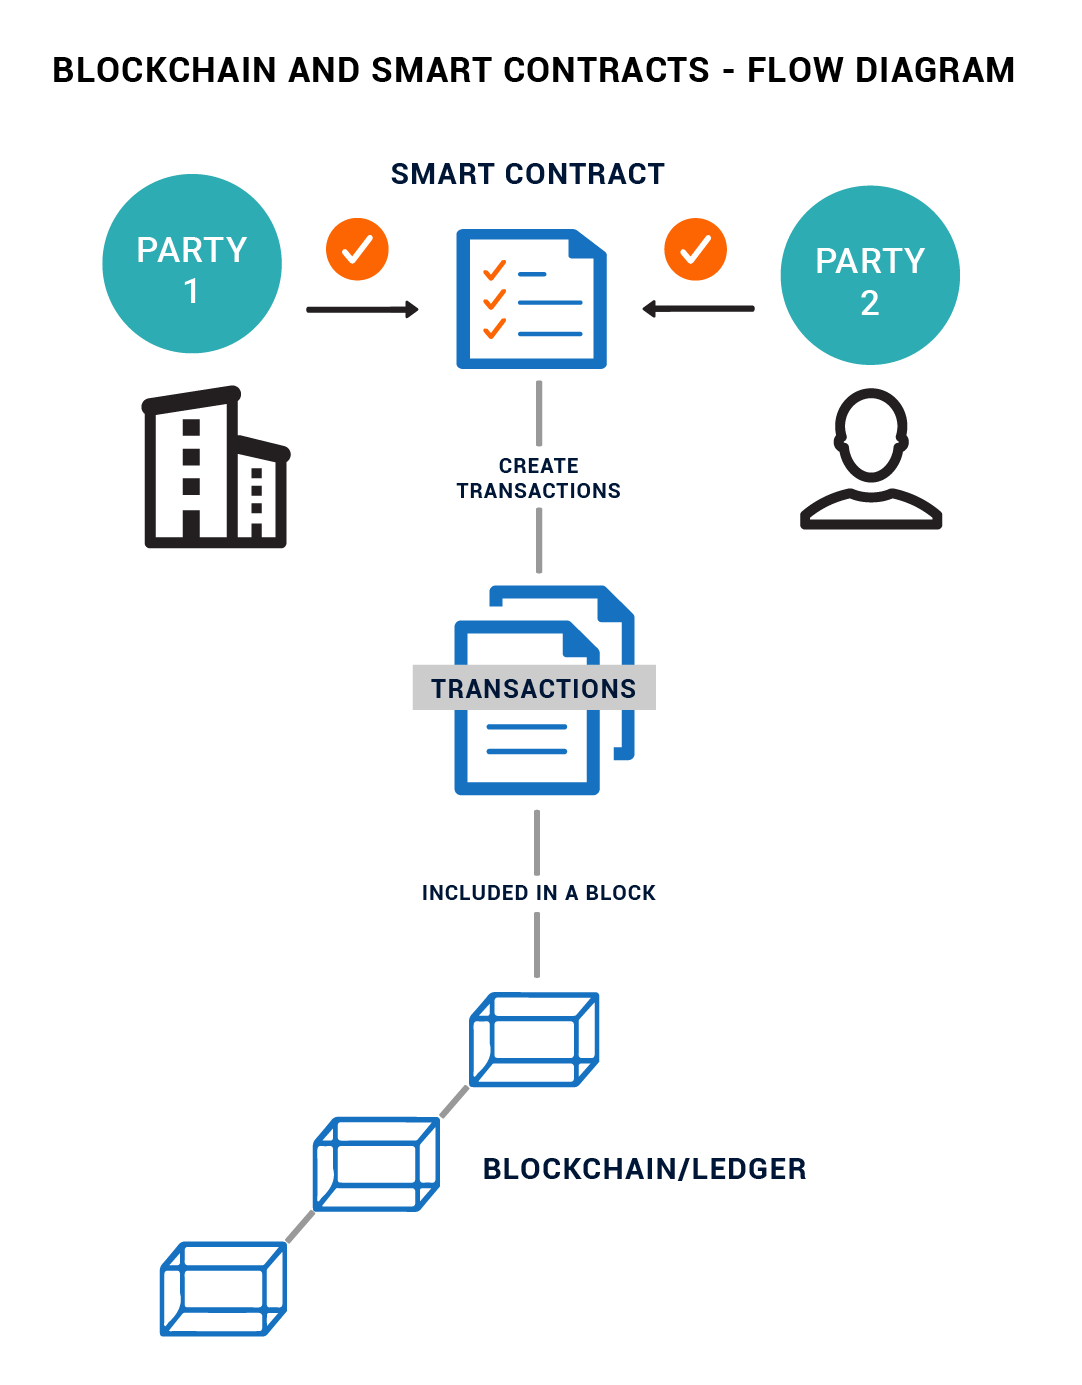 Blockchain and Smar Contracts - Flow Diagram